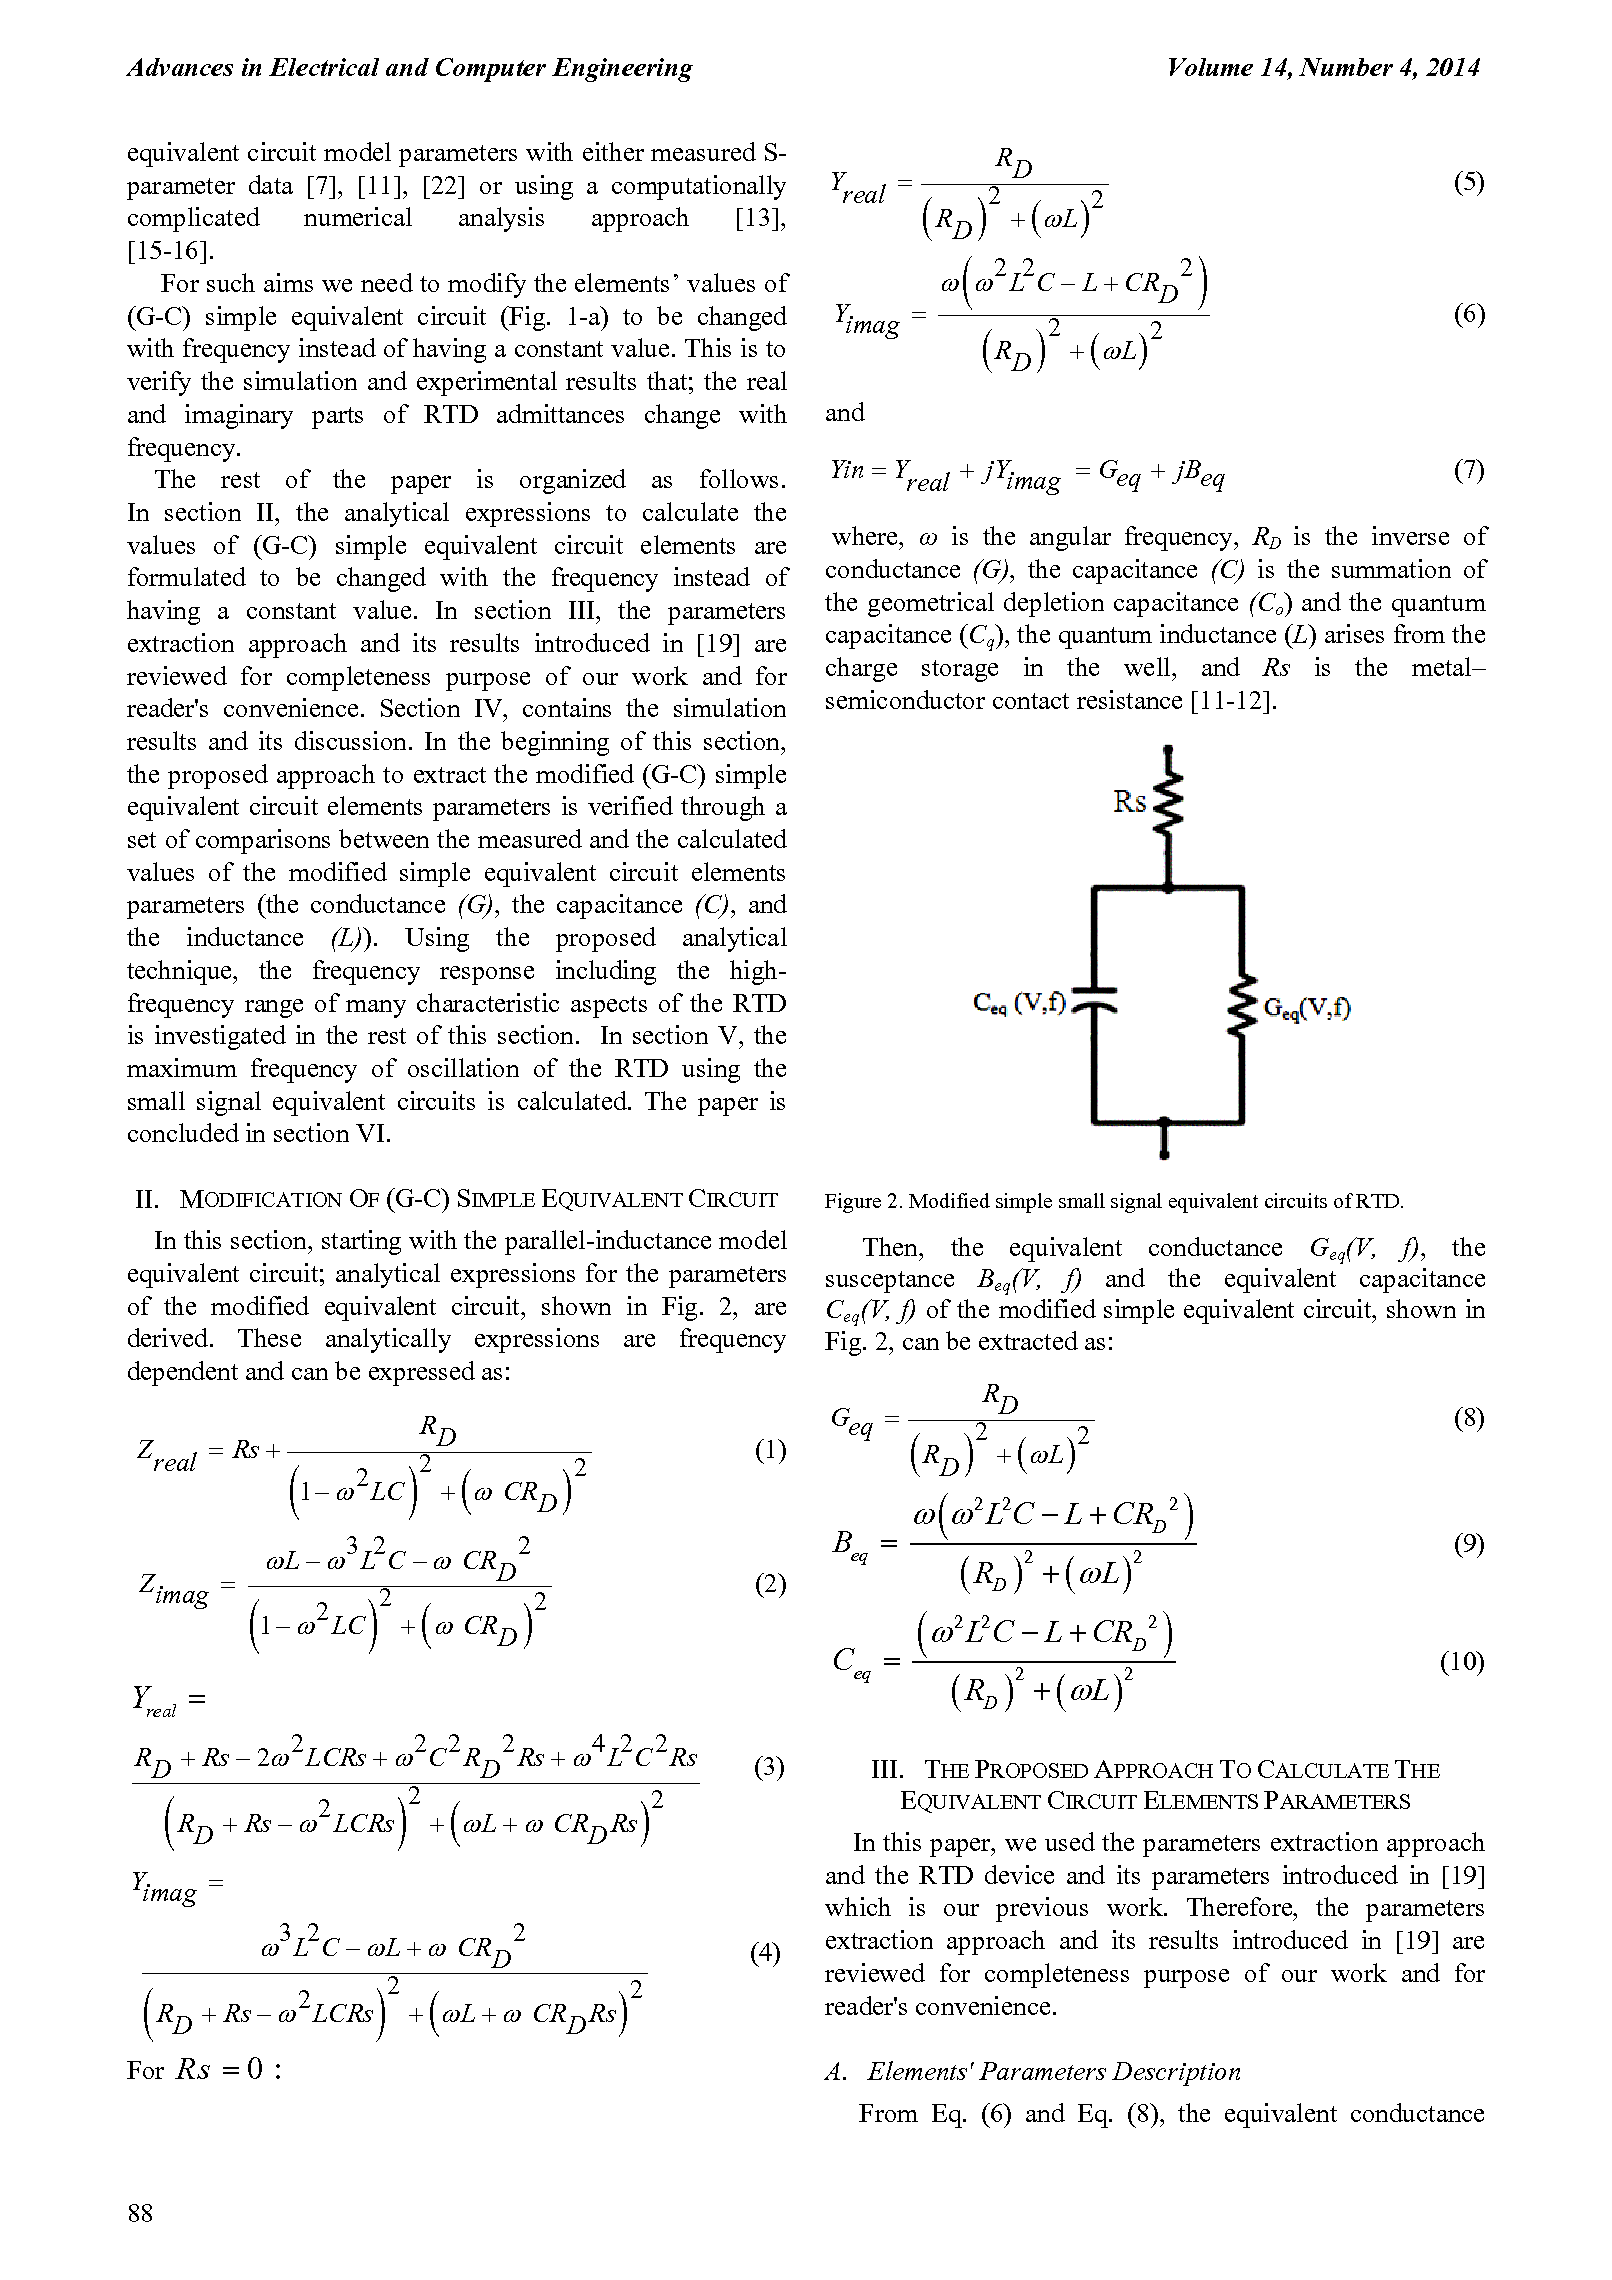 PDF Quickview for paper with DOI:10.4316/AECE.2014.04013